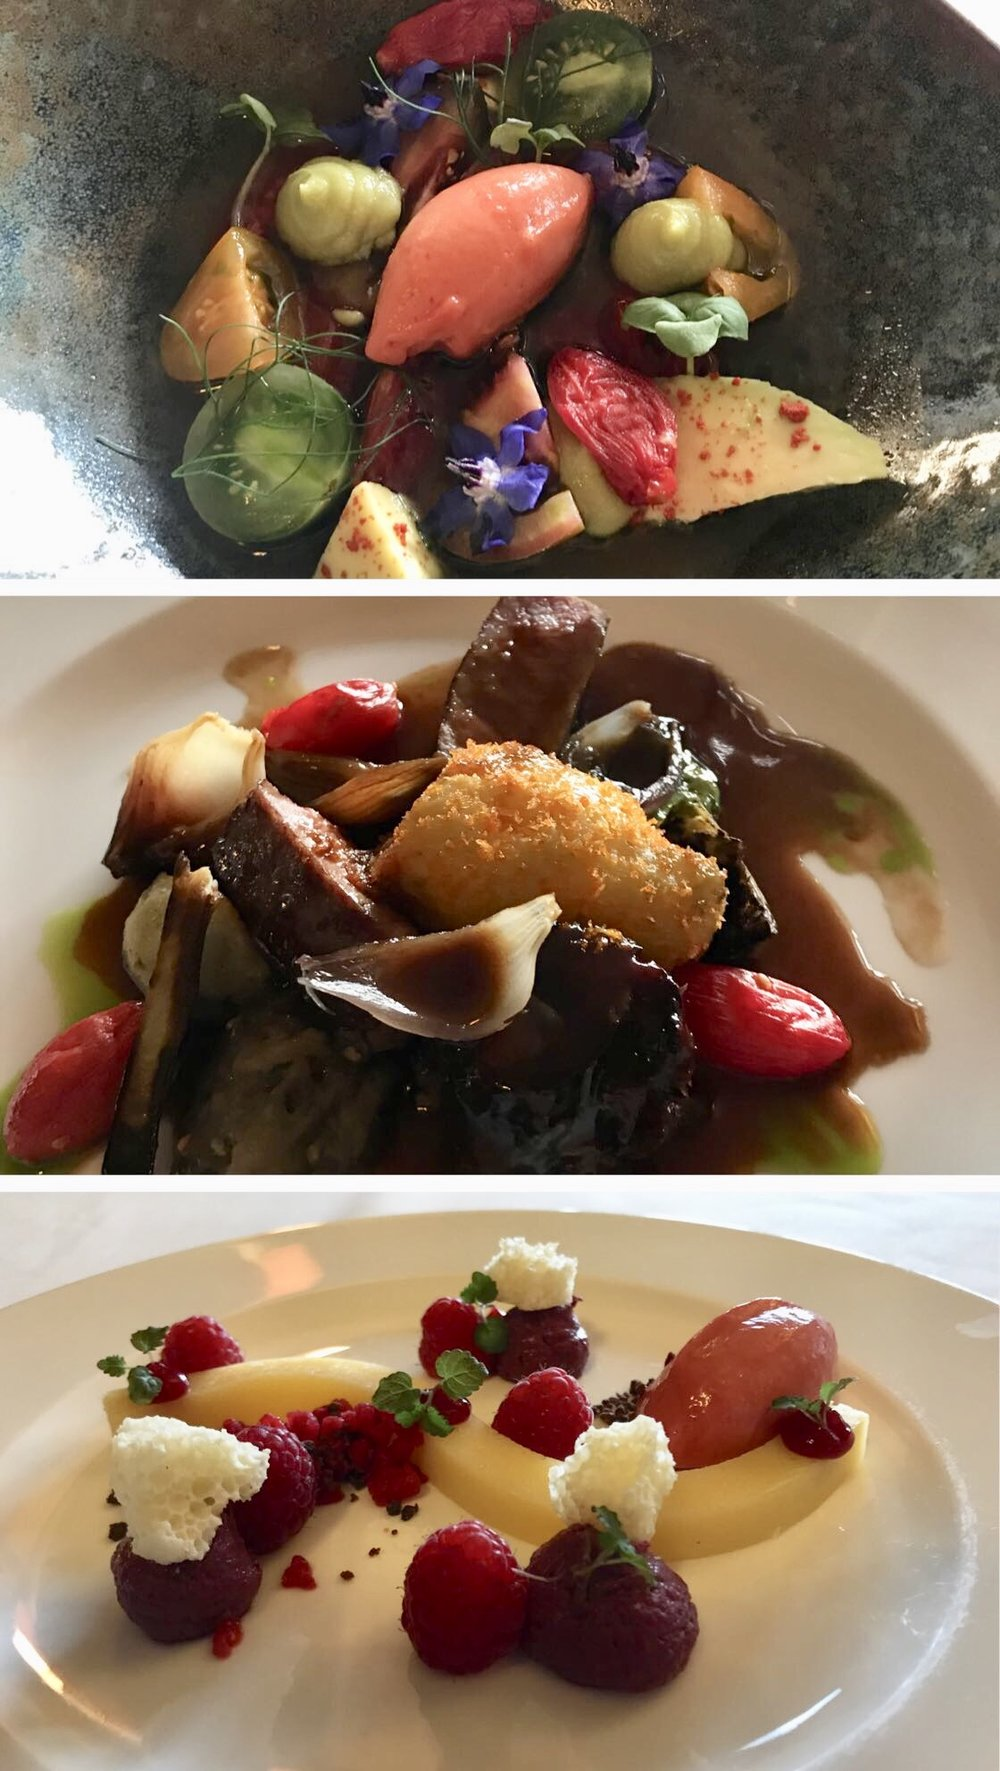 Some of head-chef Graeme's masterpieces.